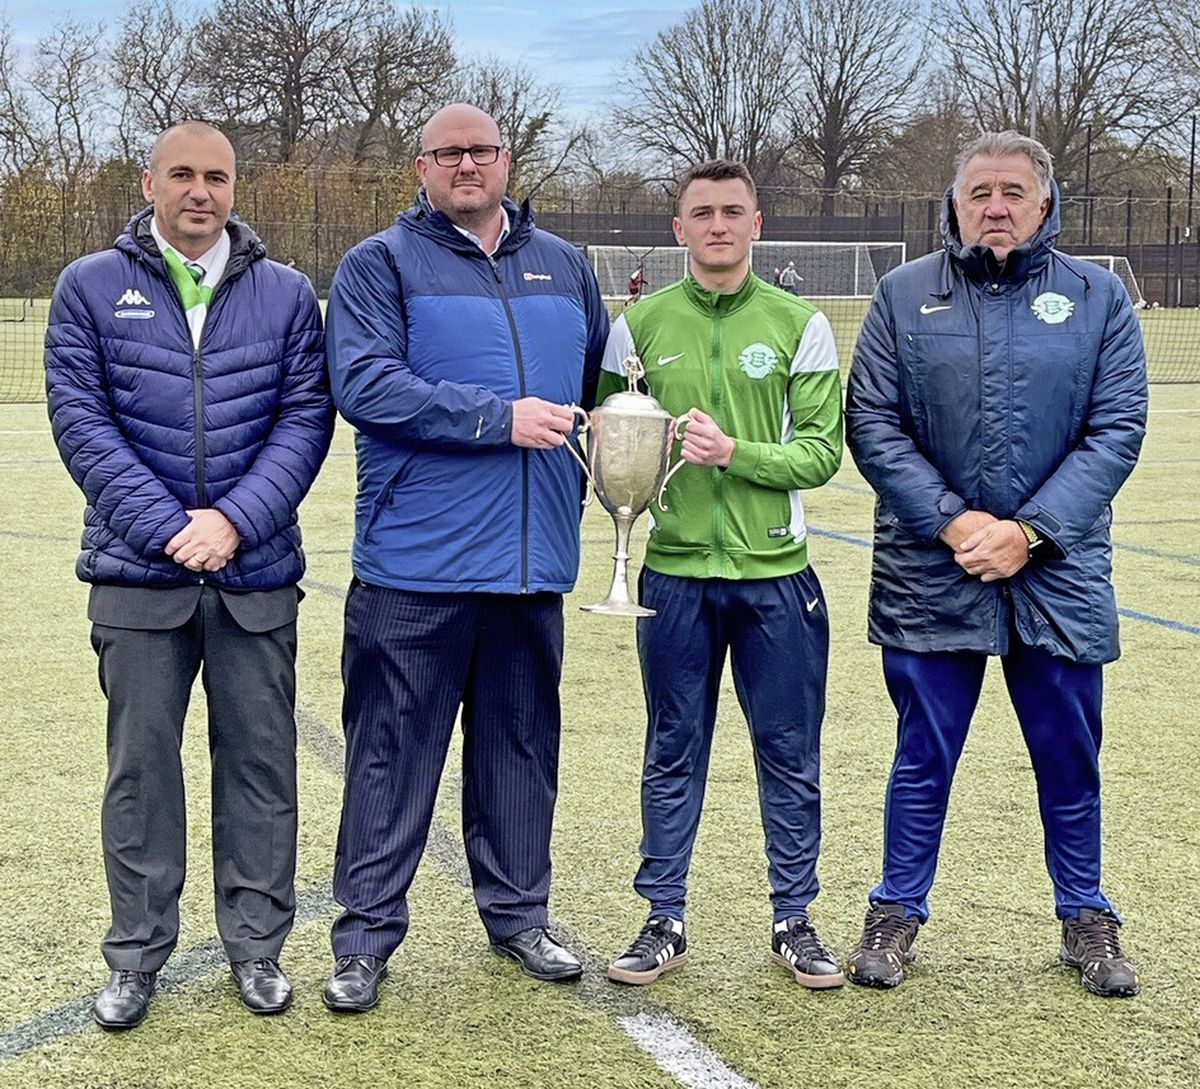 The Stranger Cup is being sponsored for the first time in its long history with Ross Gower backing the competition in the 2020-21 season. Left to right: James Falla (GFA director), Gareth Burchell (director, Ross Gower), Oscar Leadbeater (representing Guernsey U18s), Colin Fallaize (Guernsey U18s coach). (29083211)